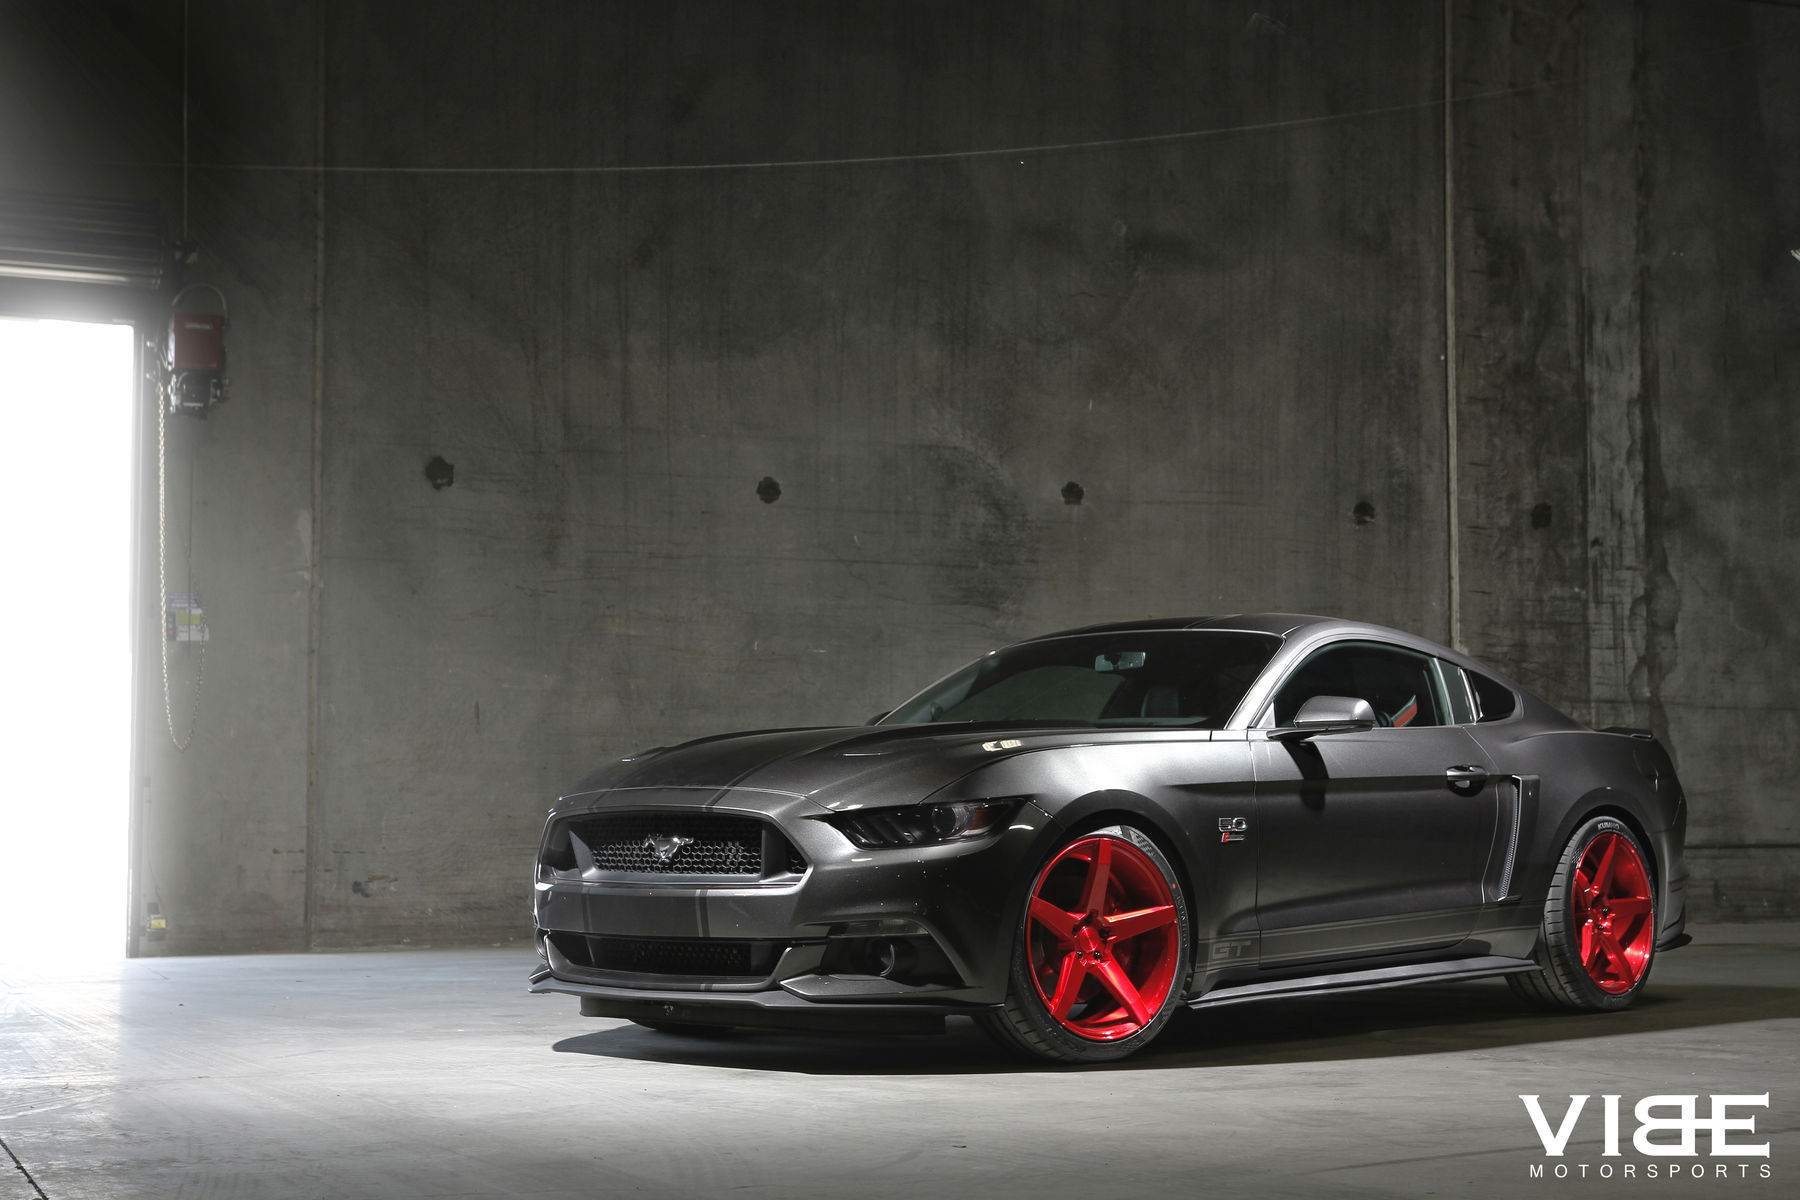 2016 Mustang Gt On 20 Savini Bm11 Brushed Red Wheels Side Body Shot